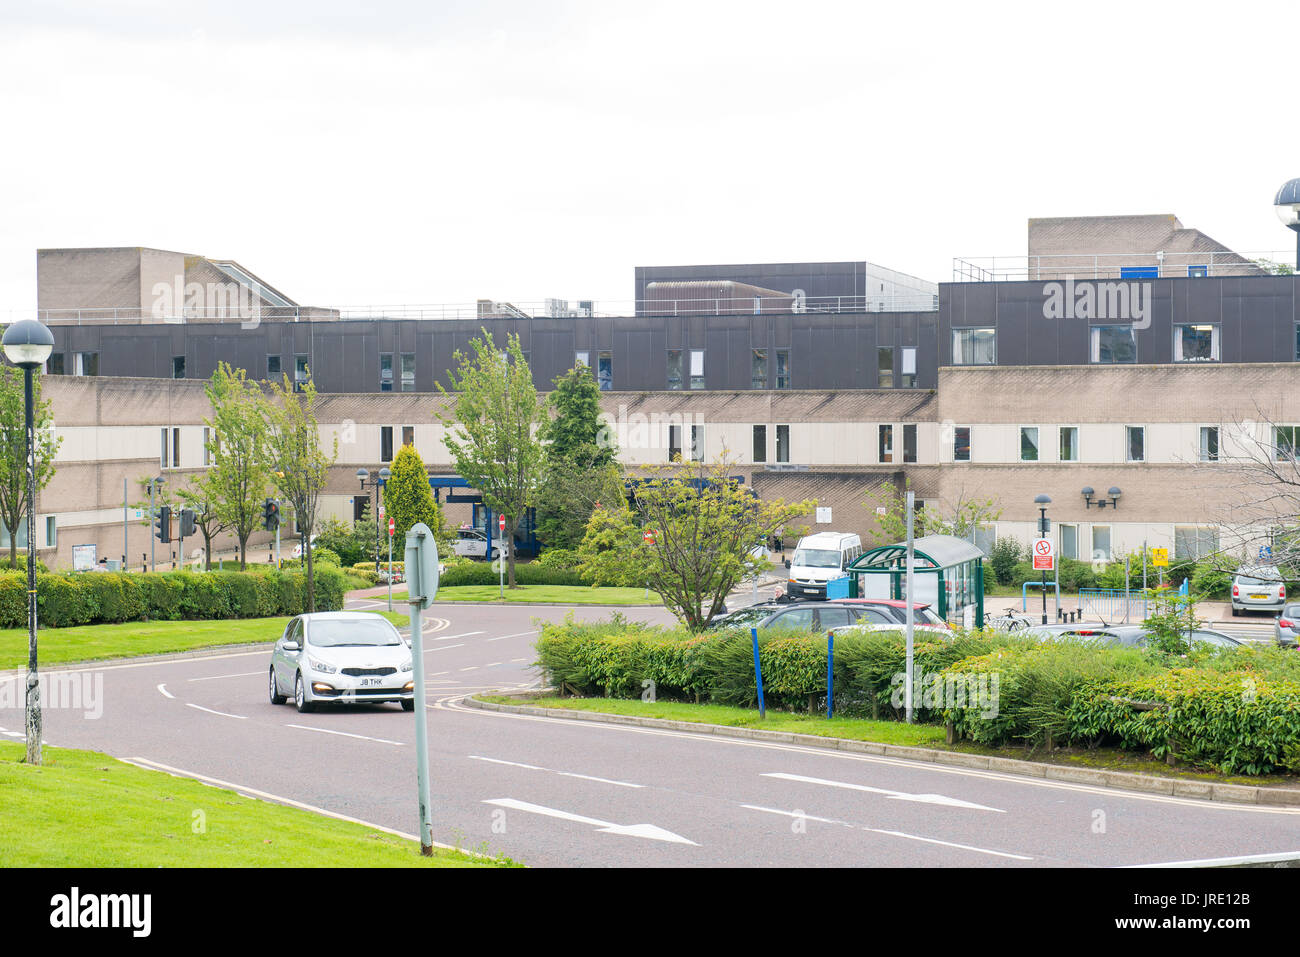 St Johns Hospital, Livingston GV - Stock Image